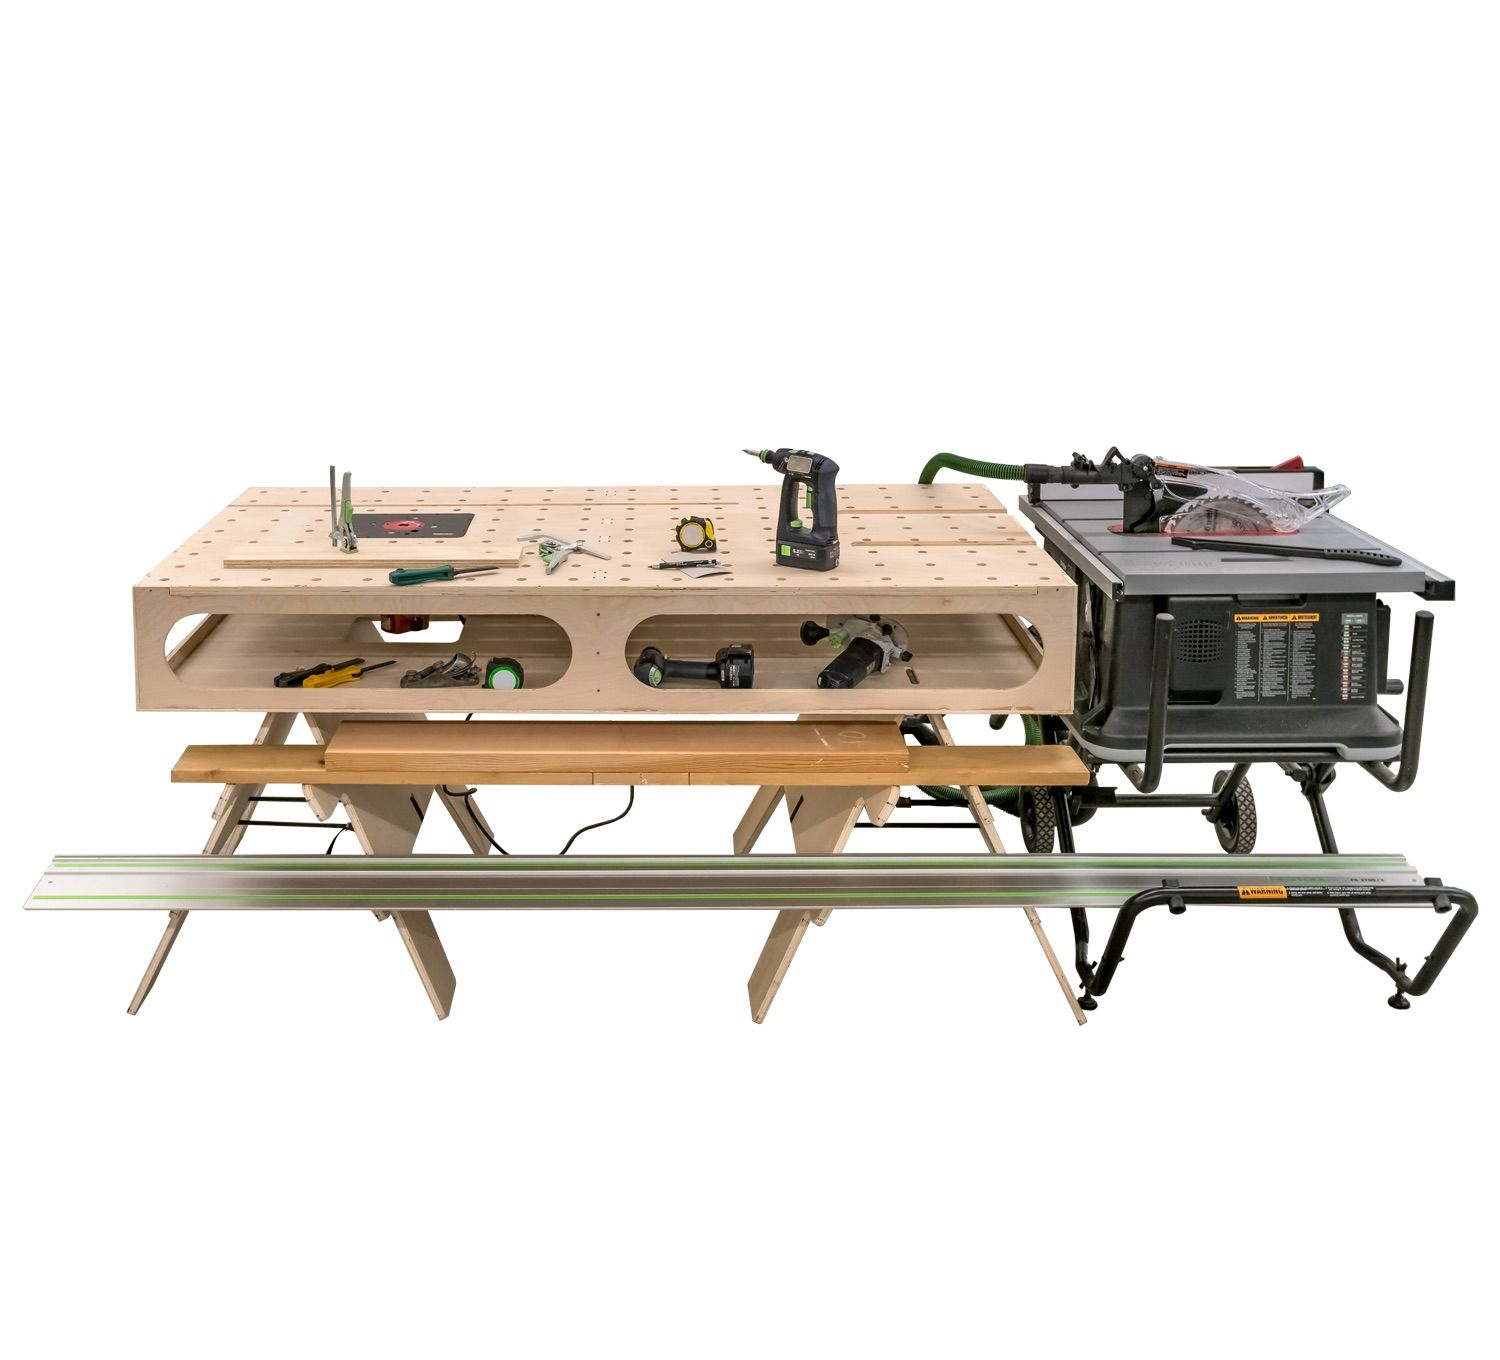 new! the paulk compact workbench 3x6 plans | wood working